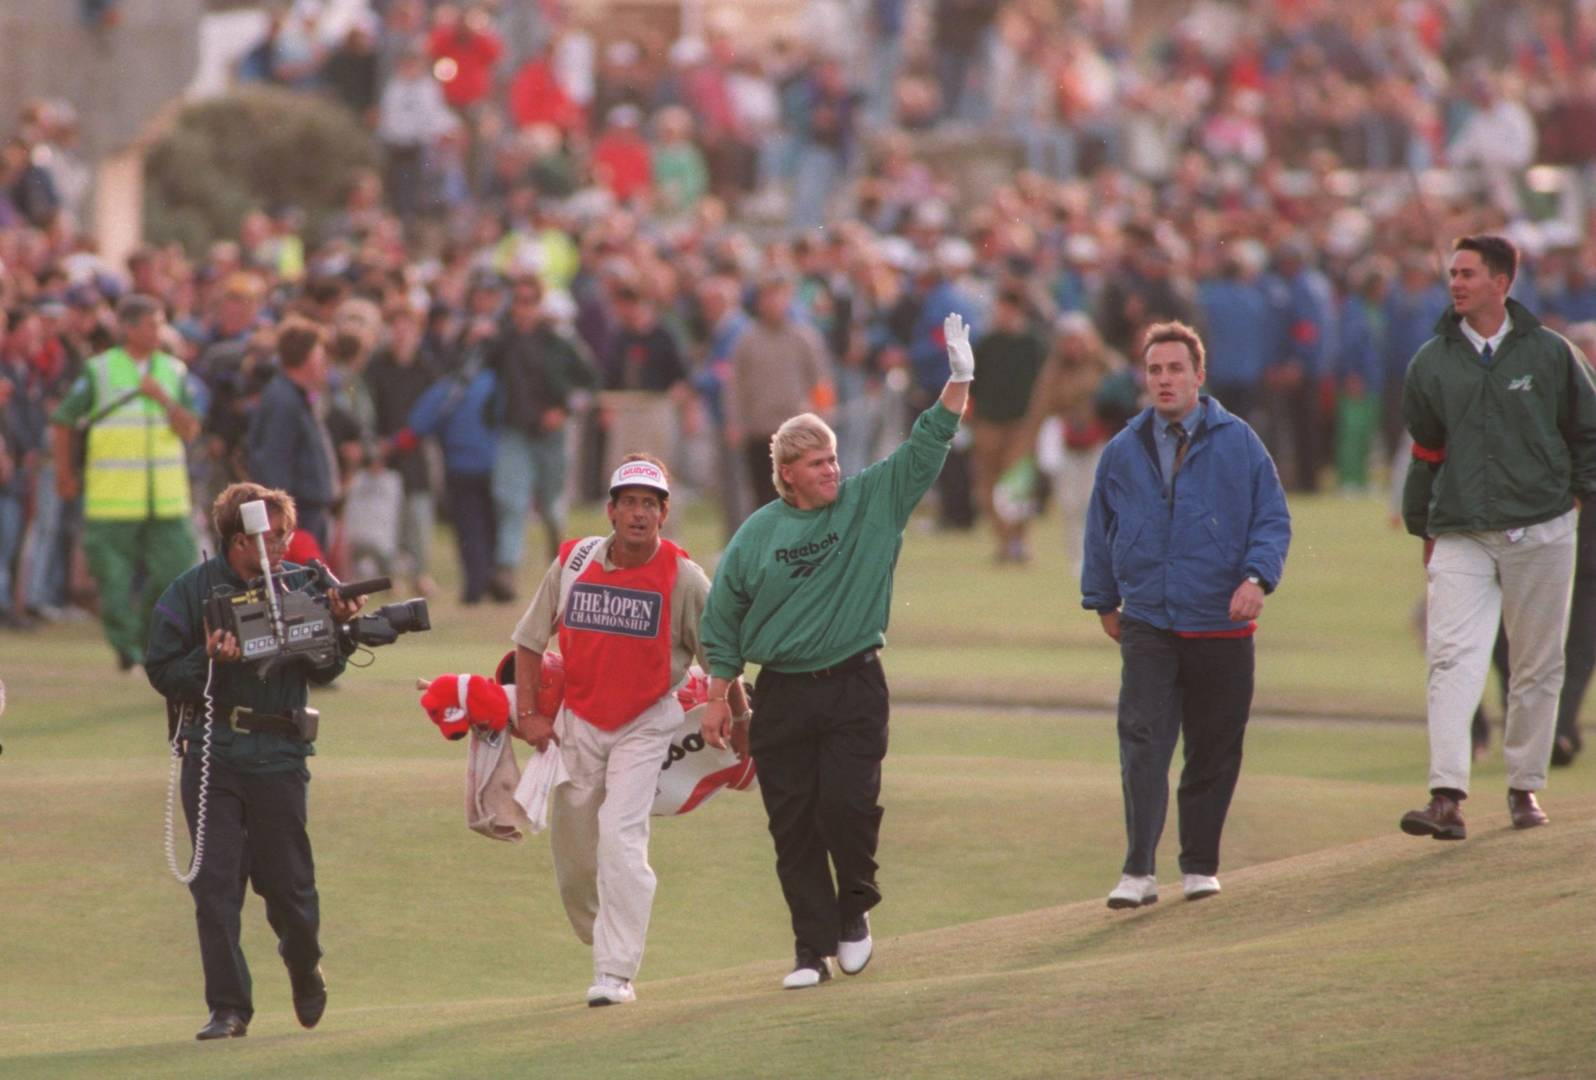 John Daly wins The 124th Open beating Costantino Rocca in a play-off, 1995